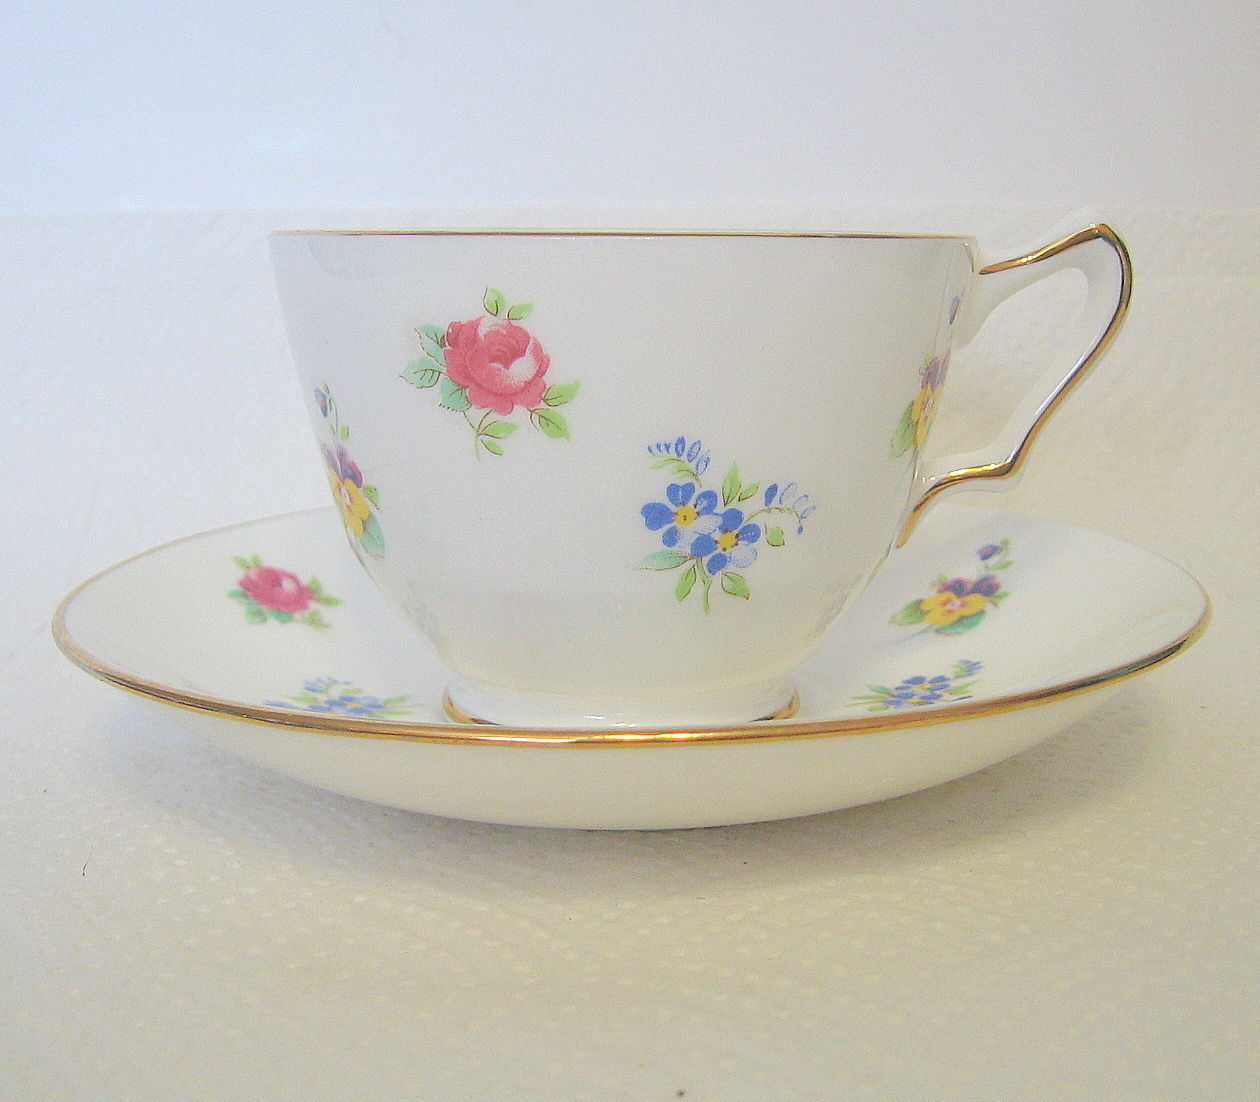 Crown Staffordshire Teacup and Saucer Set - $31.18